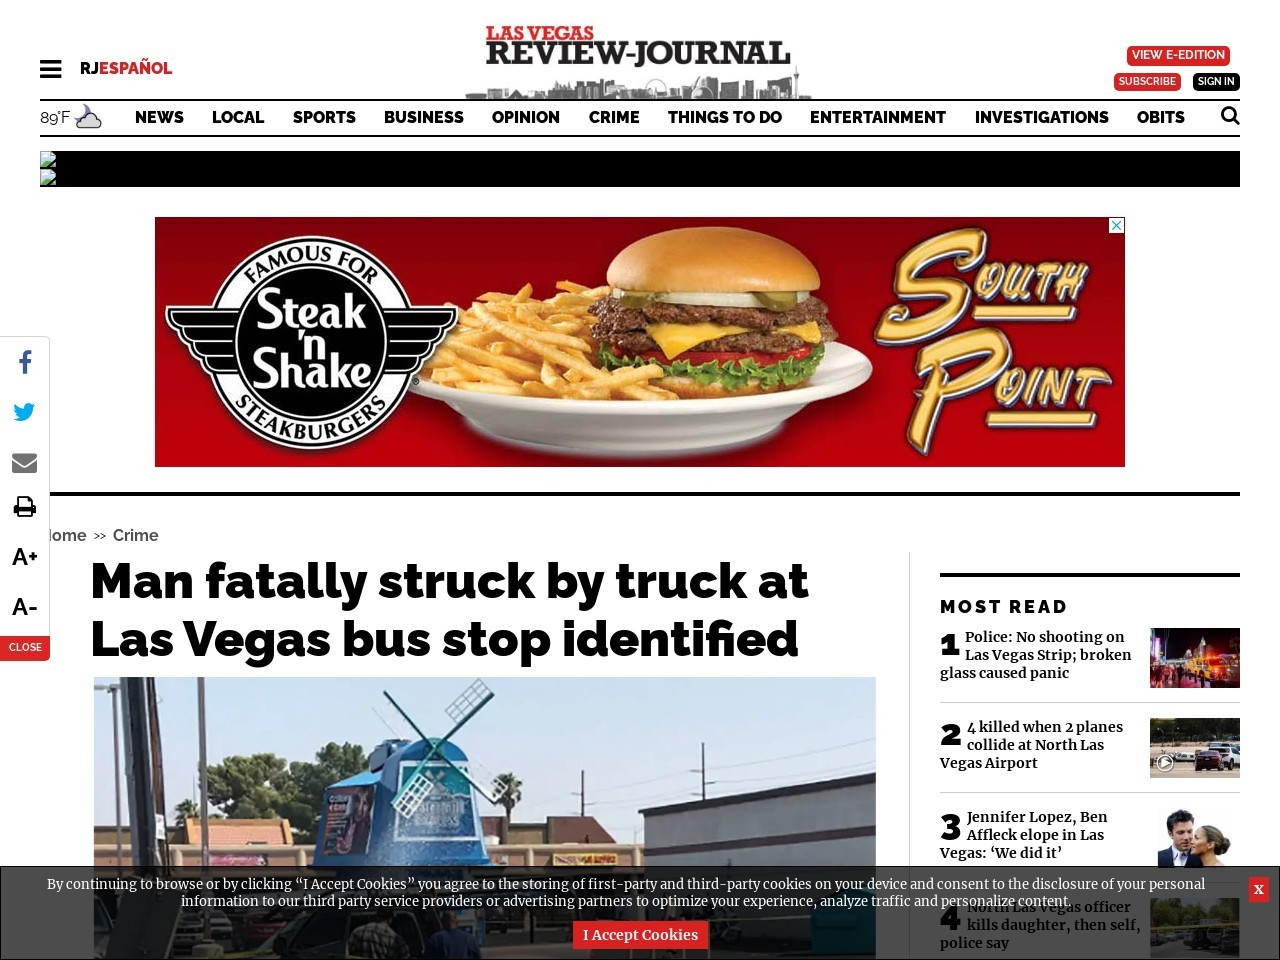 Man fatally struck by truck at Las Vegas bus stop identified